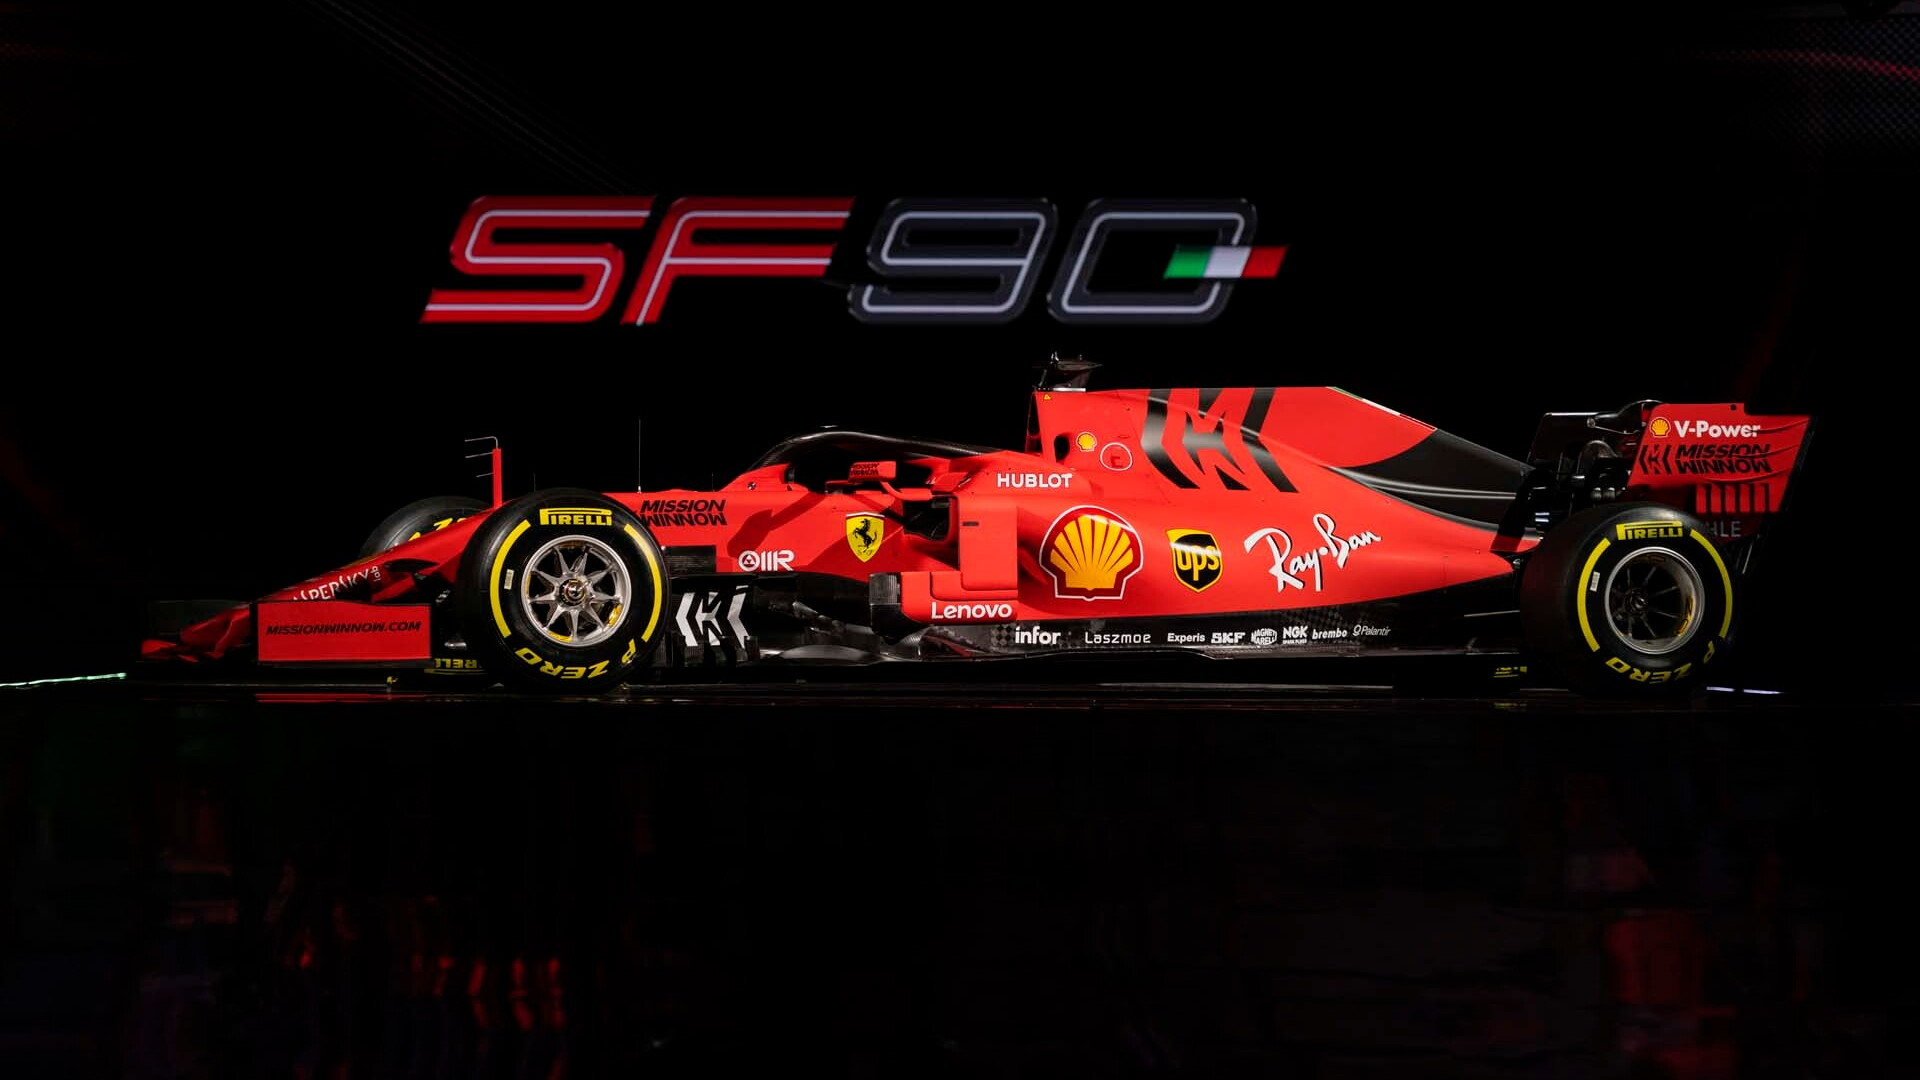 Ferrari SF90 F1 race car